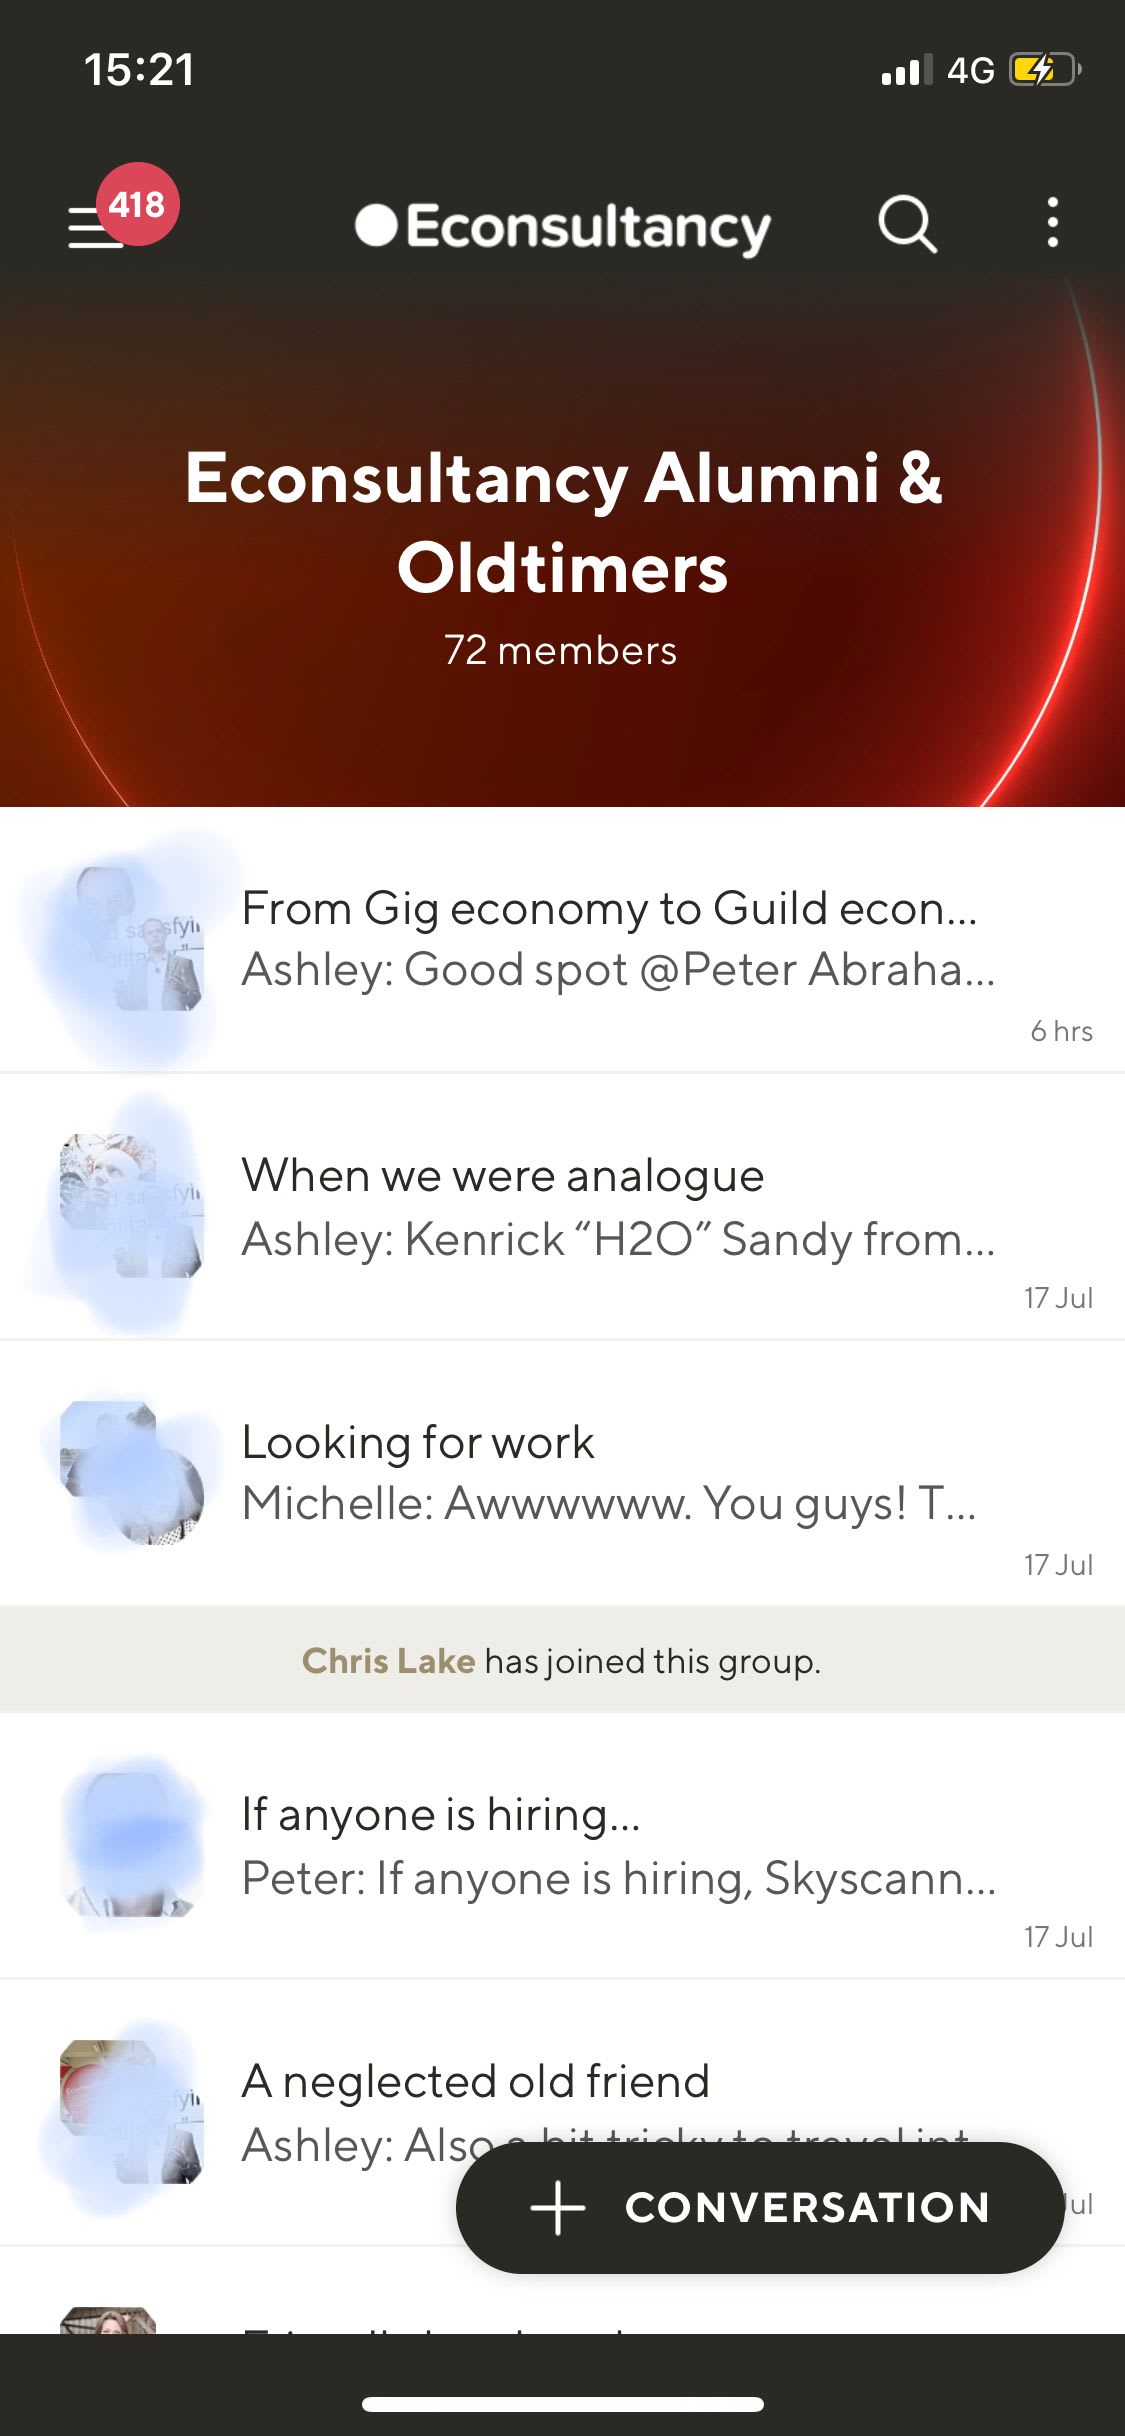 Guild is a perfect platform for alumni communities and communicating with alumni